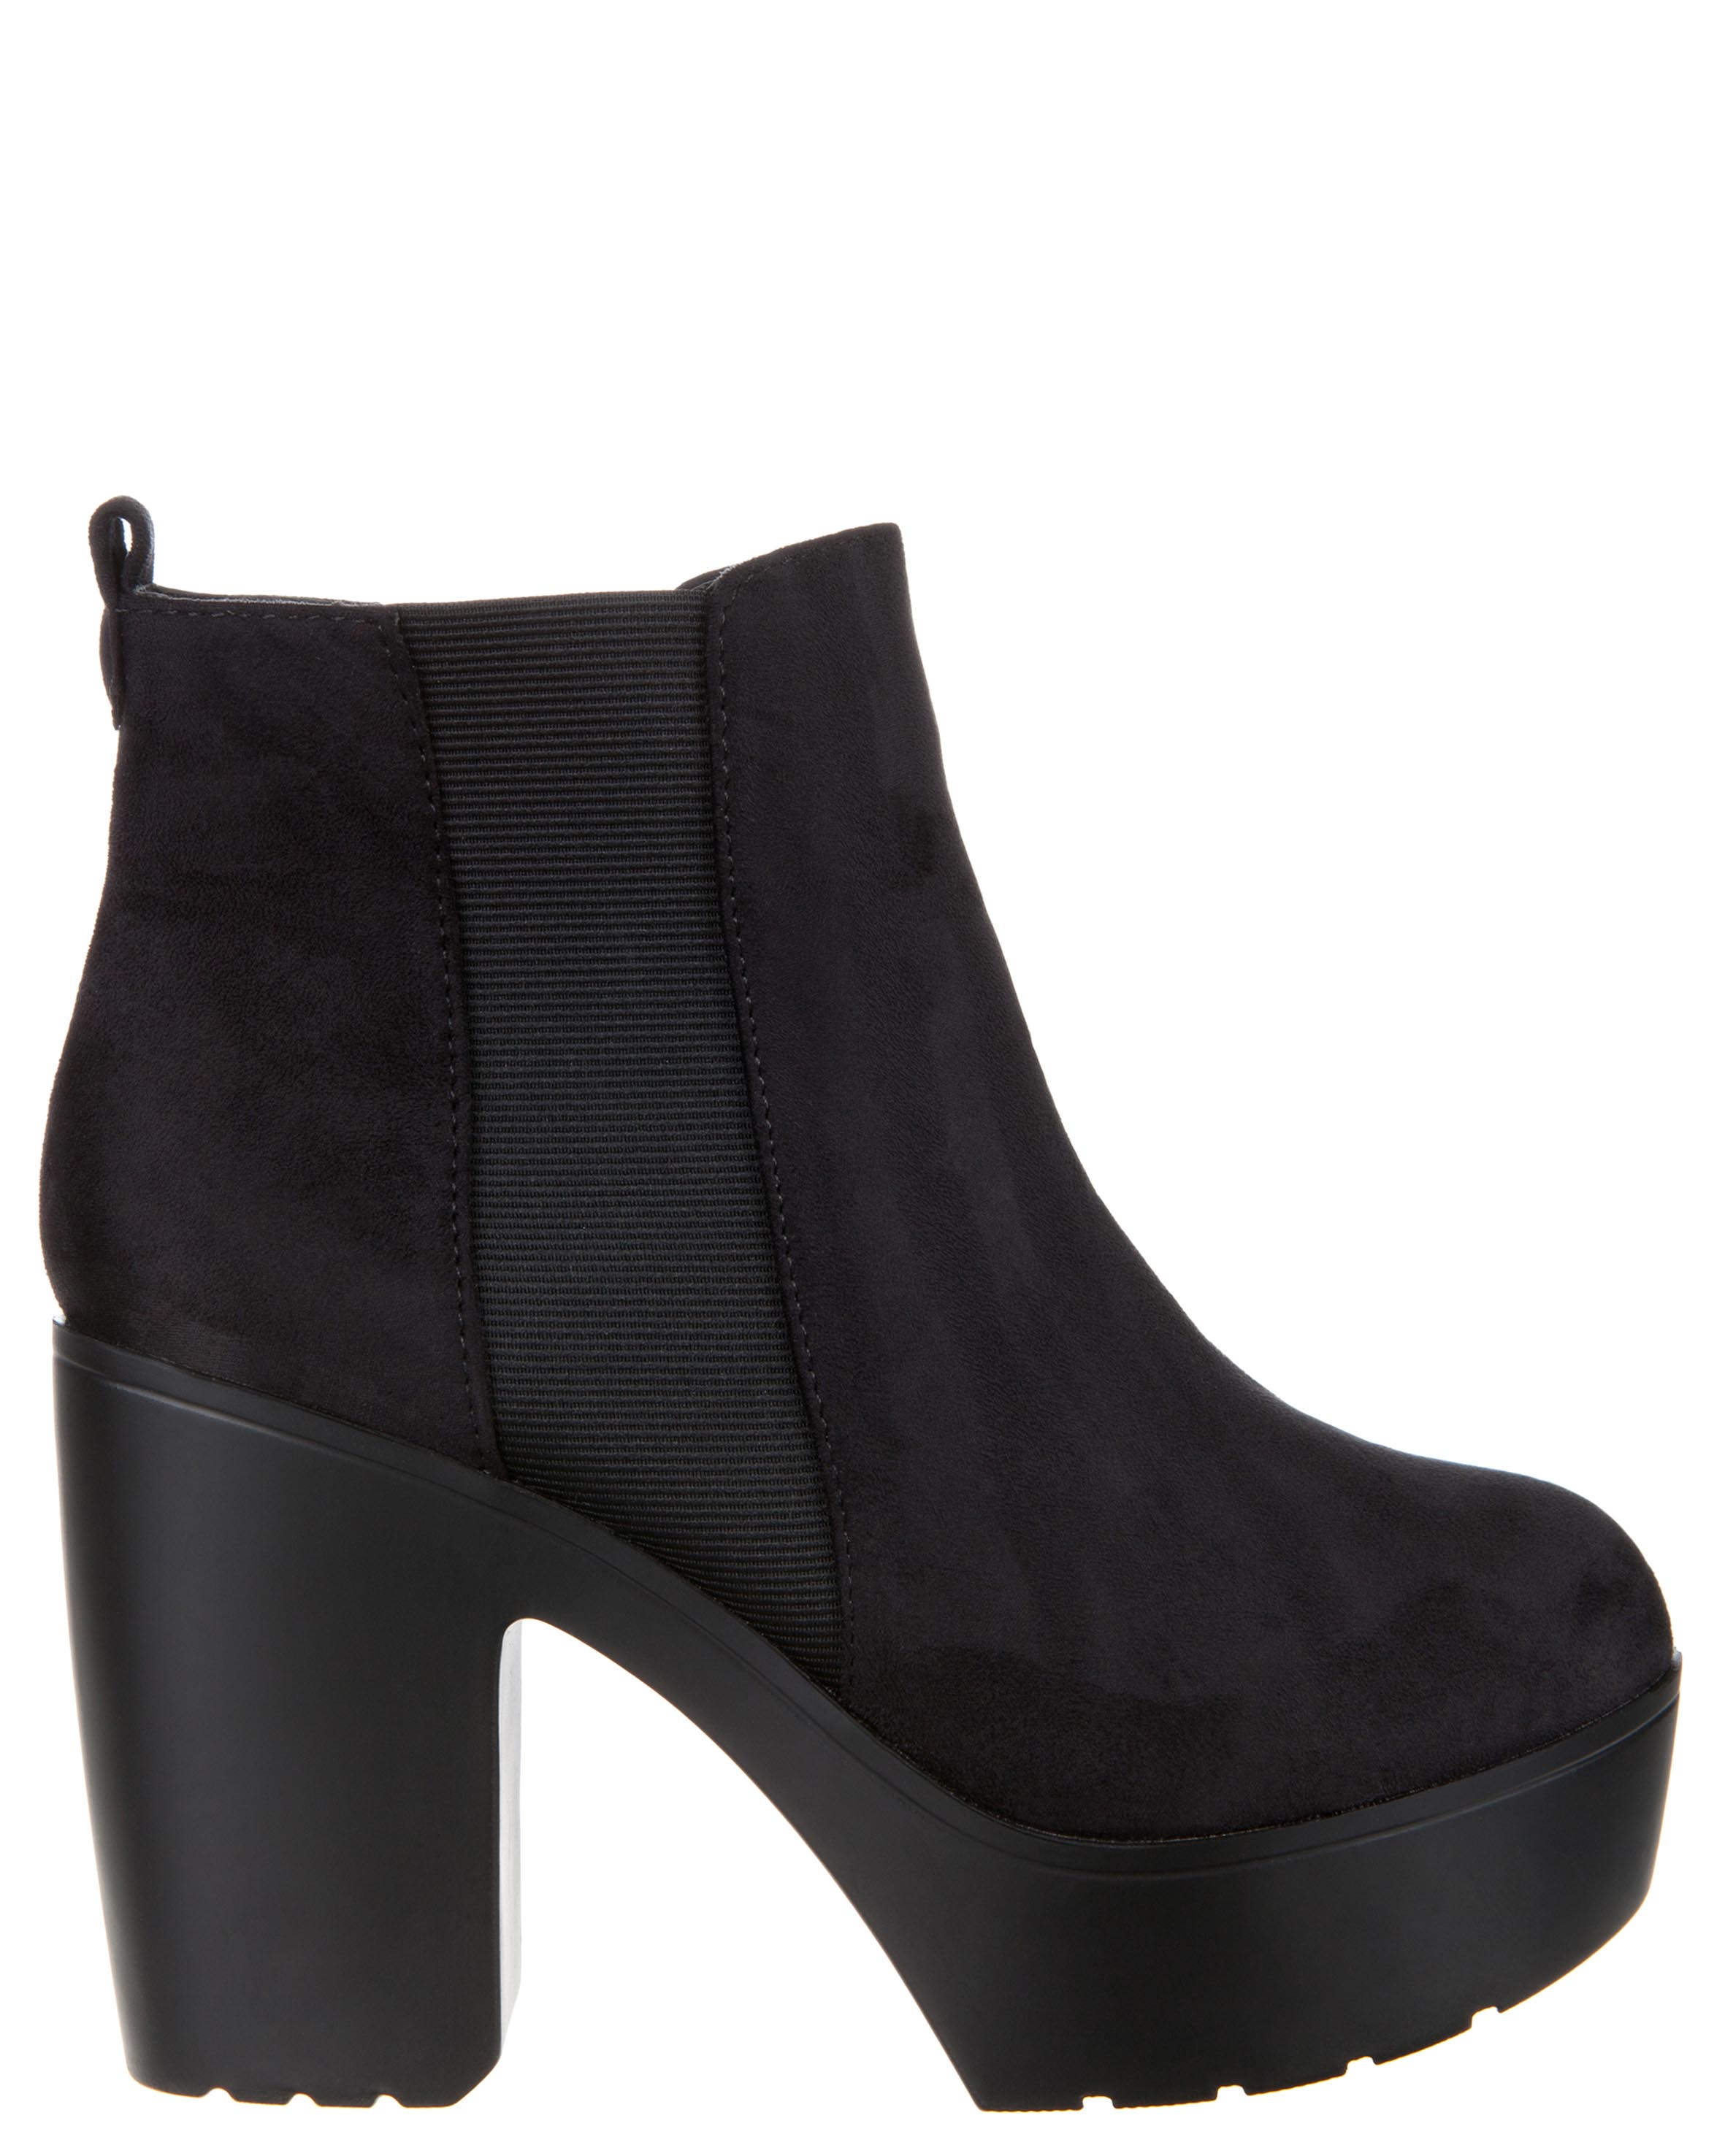 Mya Boots By Rubi Shoes Online The Iconic Australia